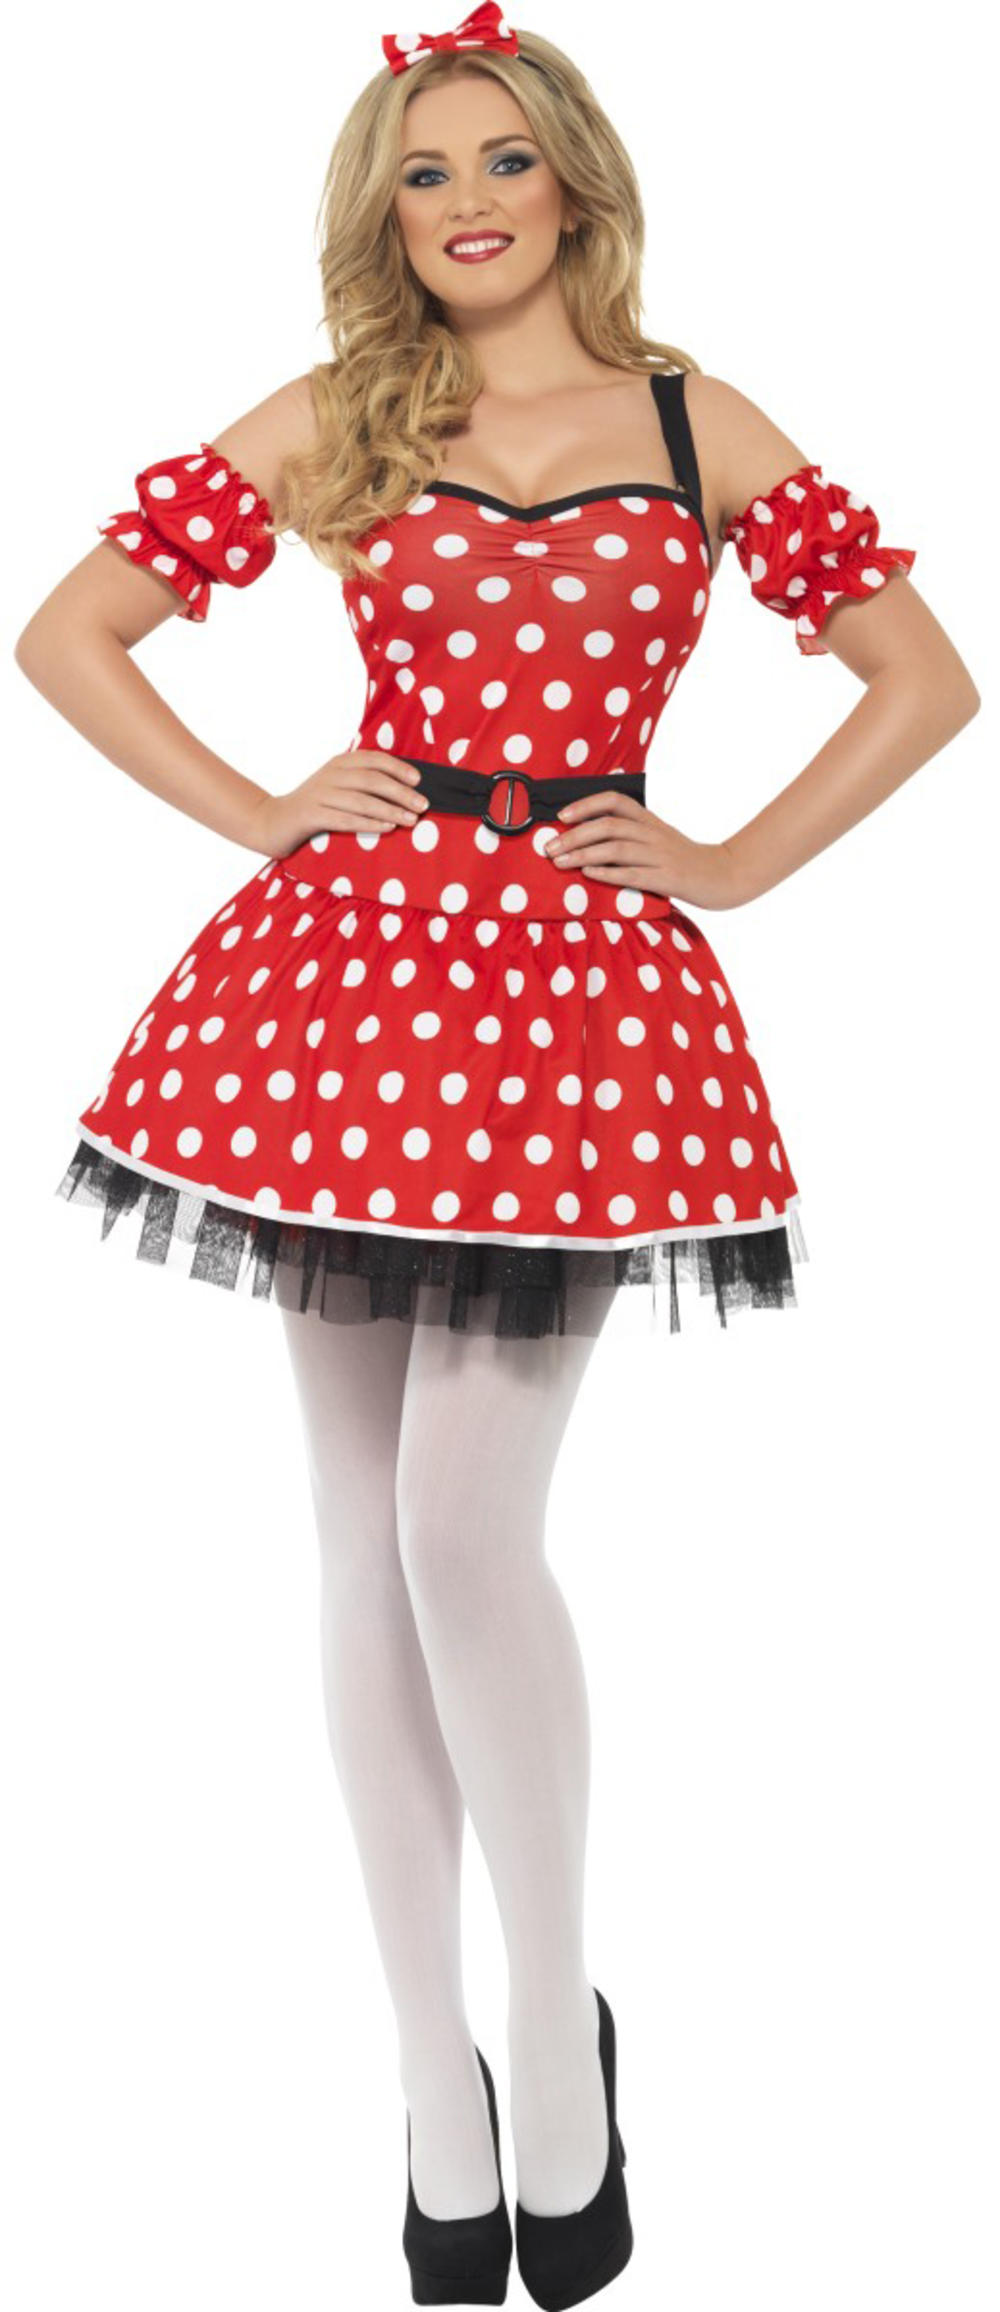 Fever Sexy Madame Mouse Ladies Fancy Dress Cartoon Animal Womens Adults Costume